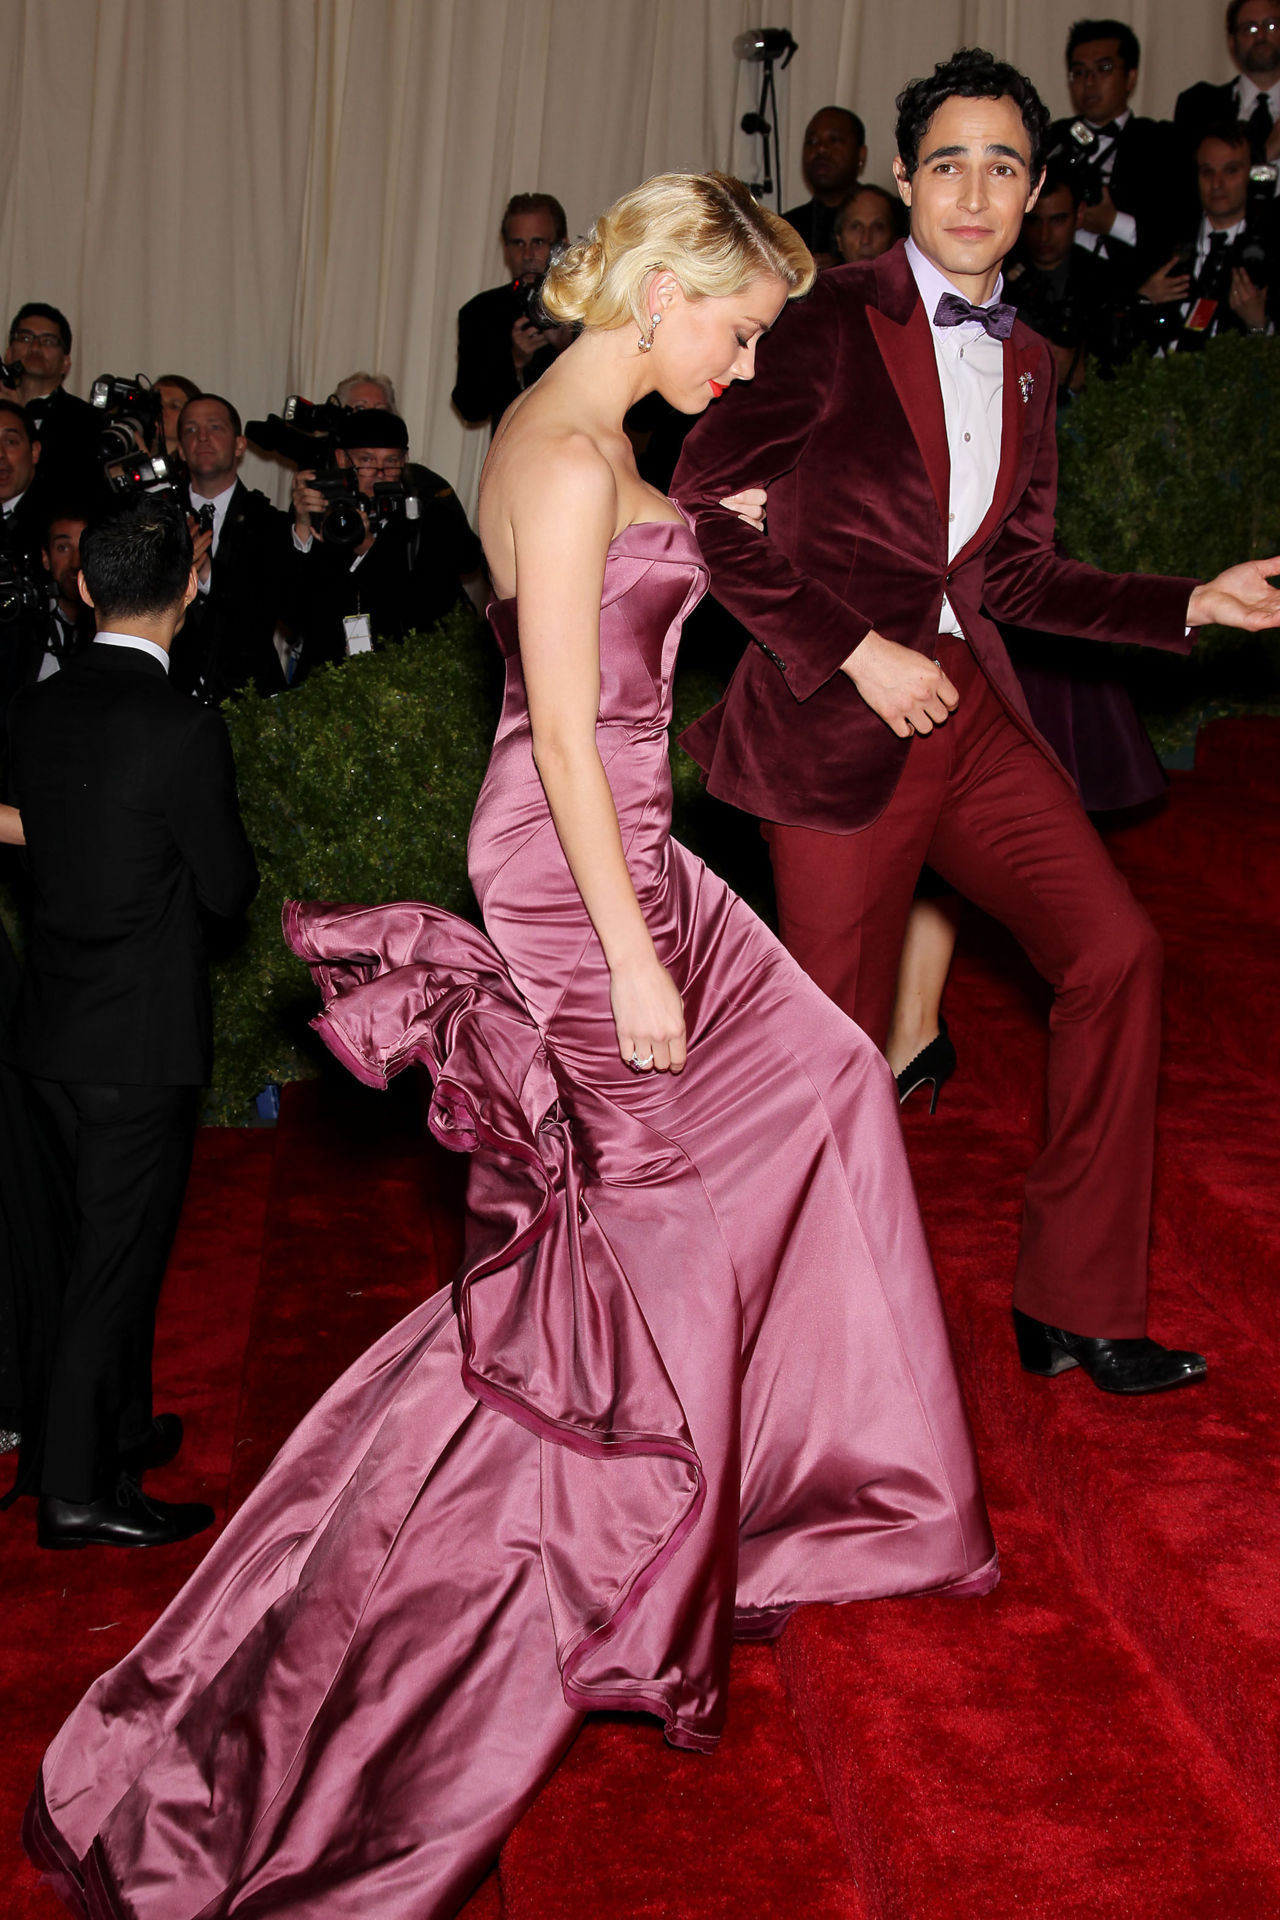 suicideblonde:  Amber Heard wearing a Zac Posen gown and with Zac Posen at the 2012 Costume Gala, May 7th Amber is somehow retro and modern at the same time, it's so intriguing to figure out.